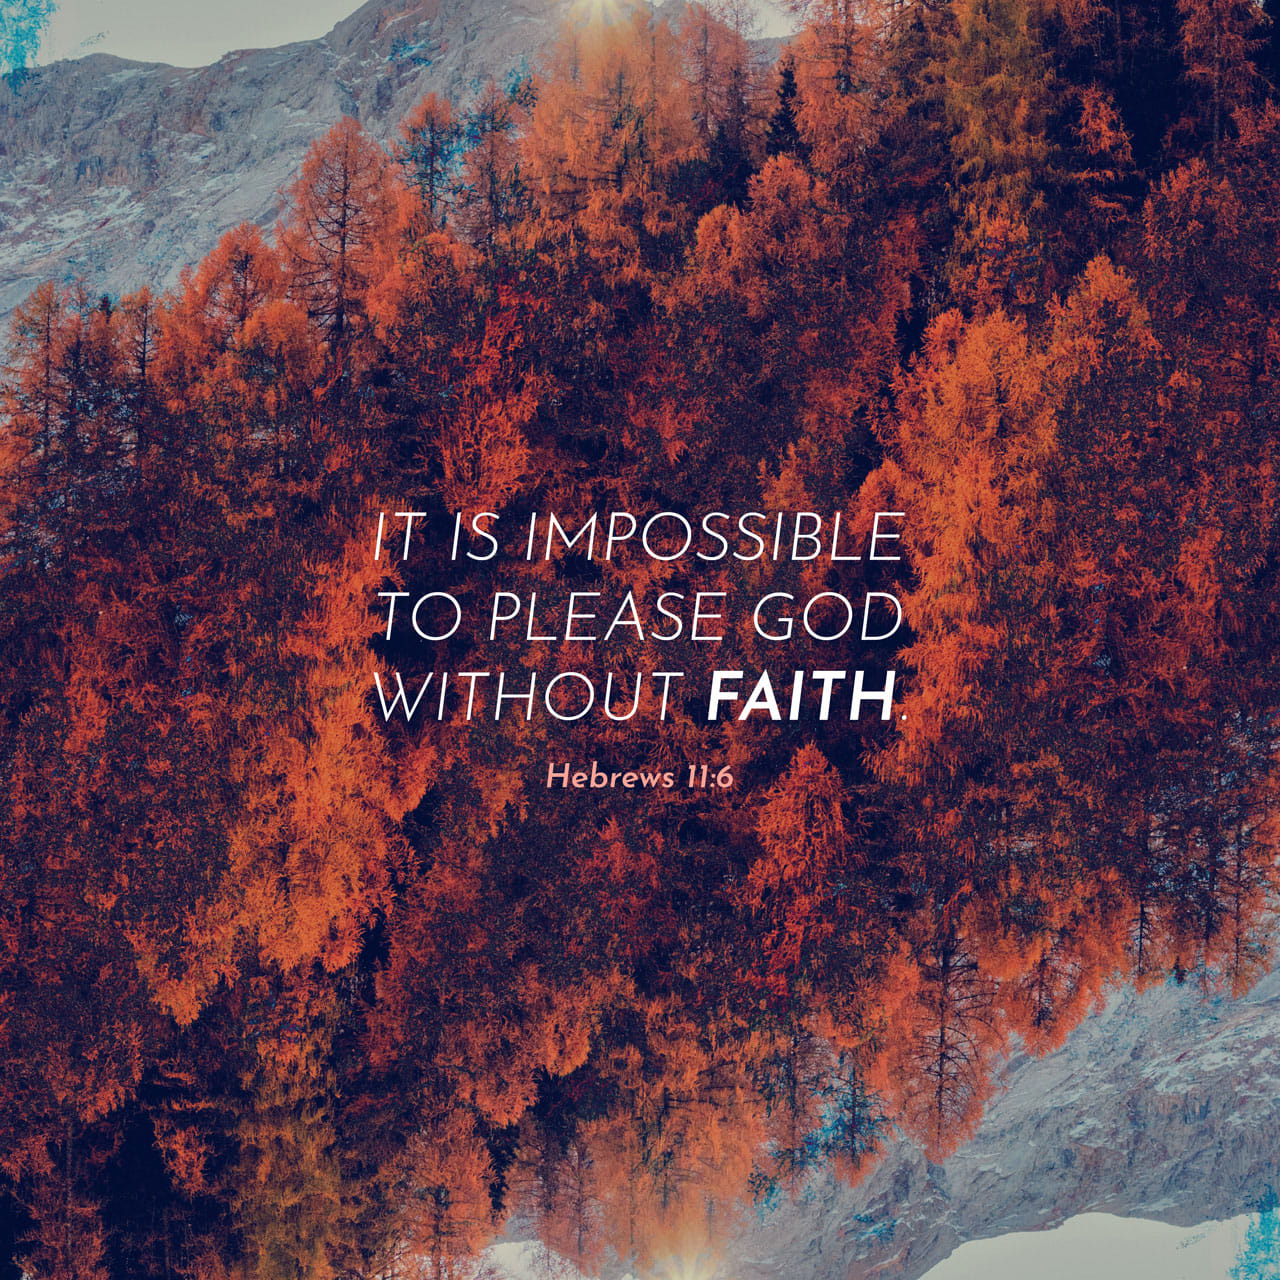 Hebrews 11:6 But Without Faith It Is Impossible To Please